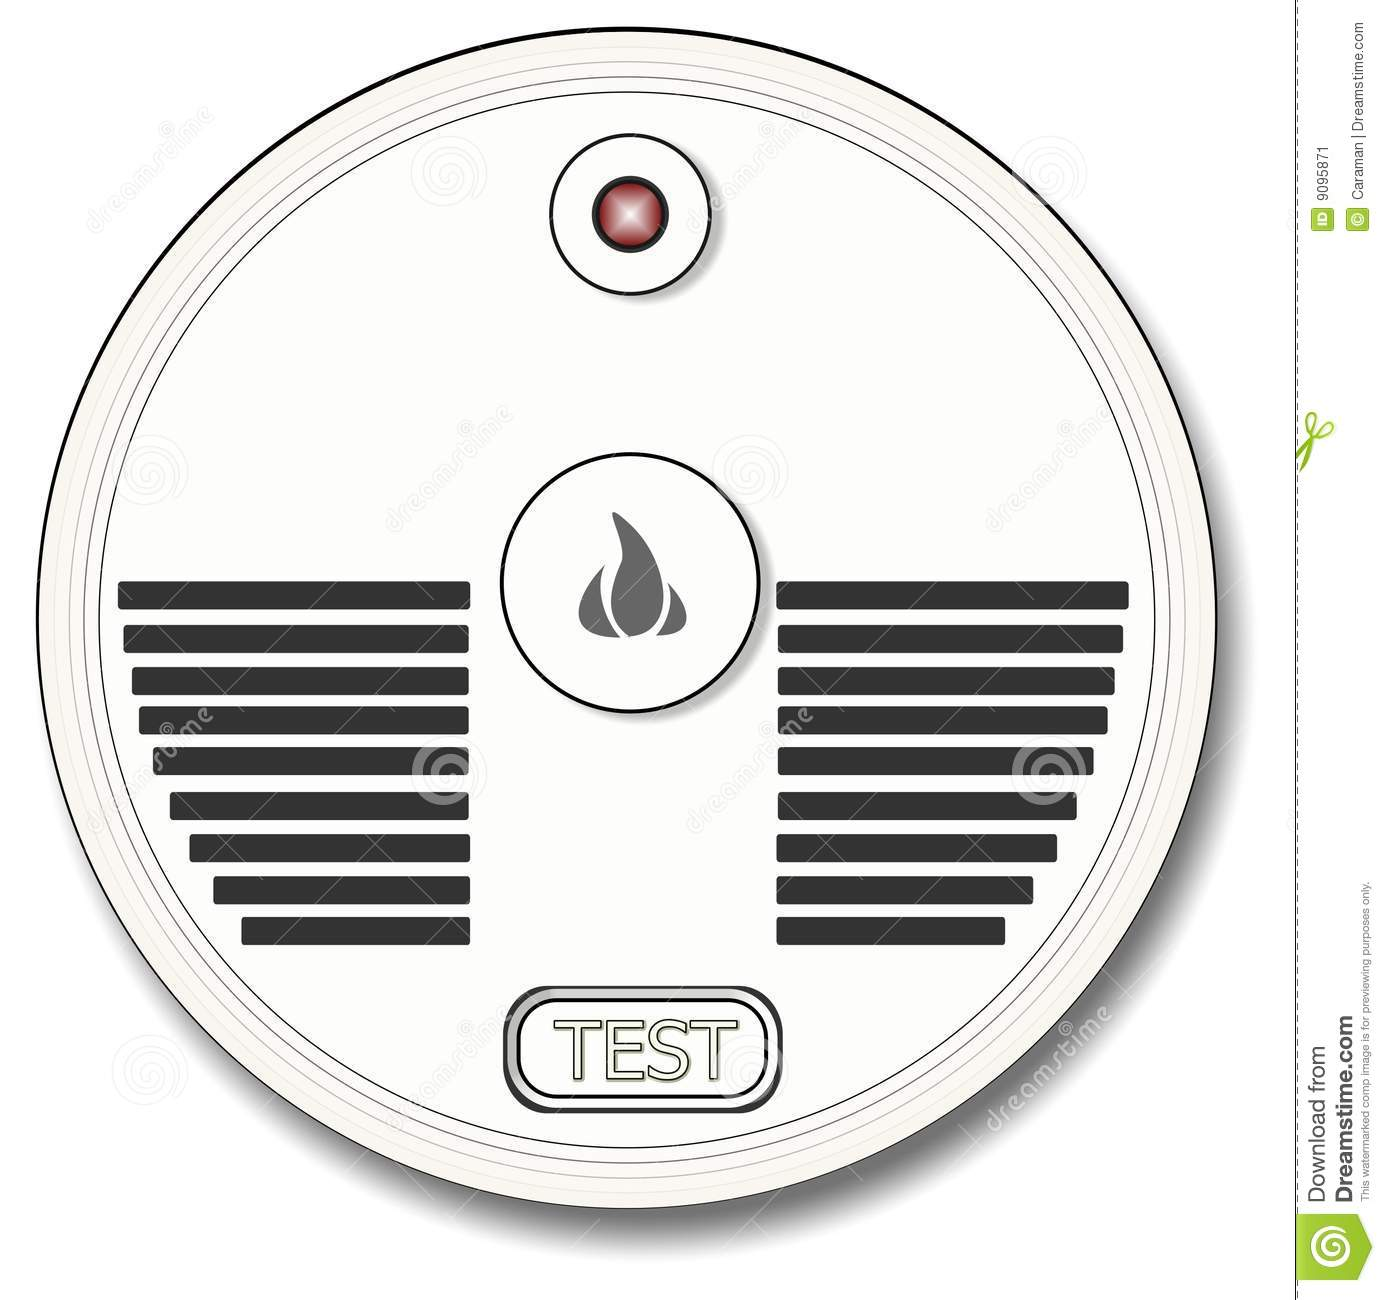 Smoke Detector Coloring Page Jpg 1385x1300